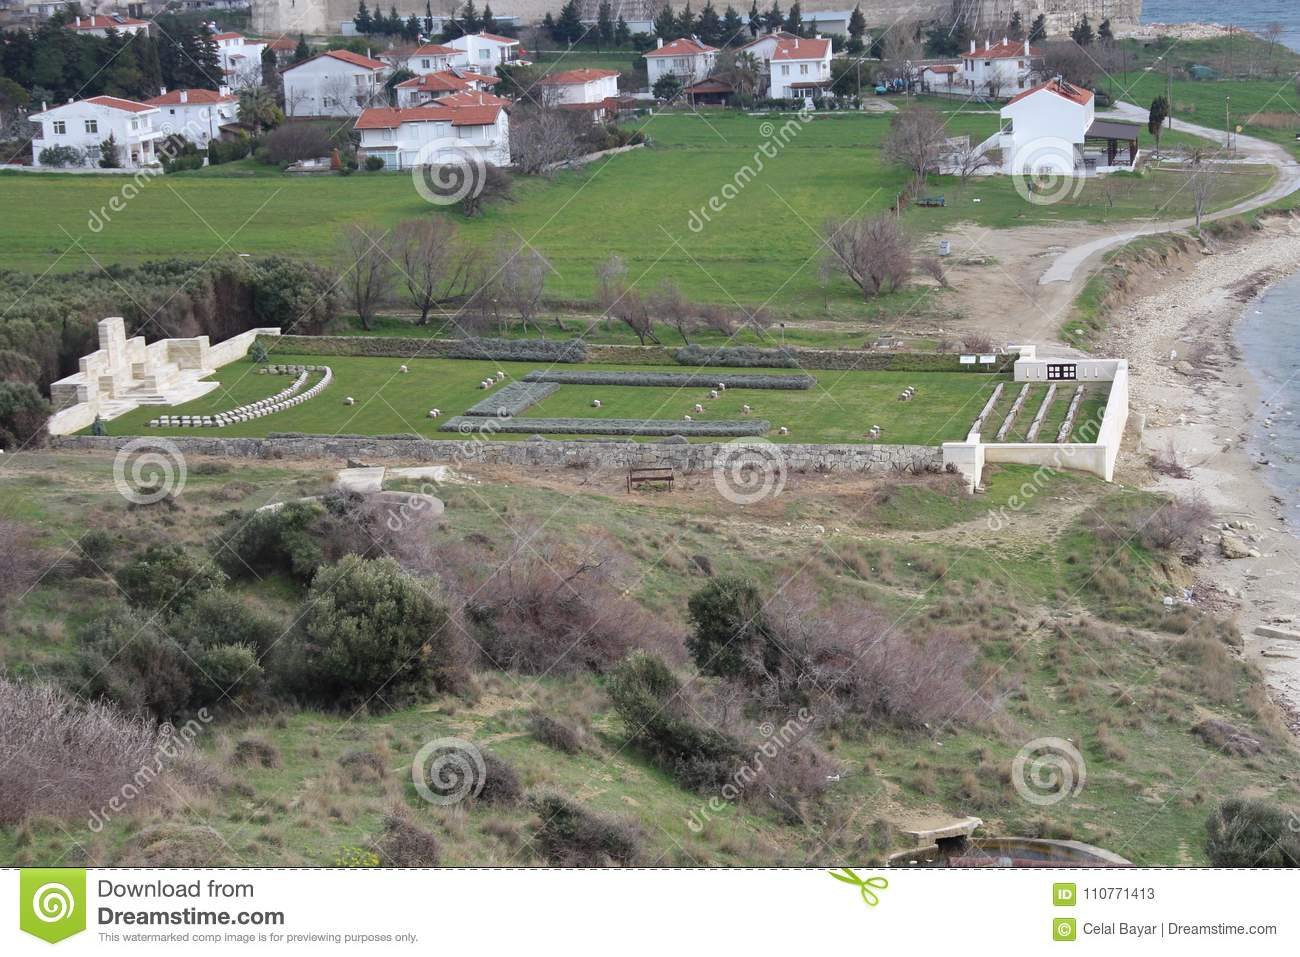 Download The Hidden Cemetery And Monument Stock Image - Image of cemetery, hidden: 110771413